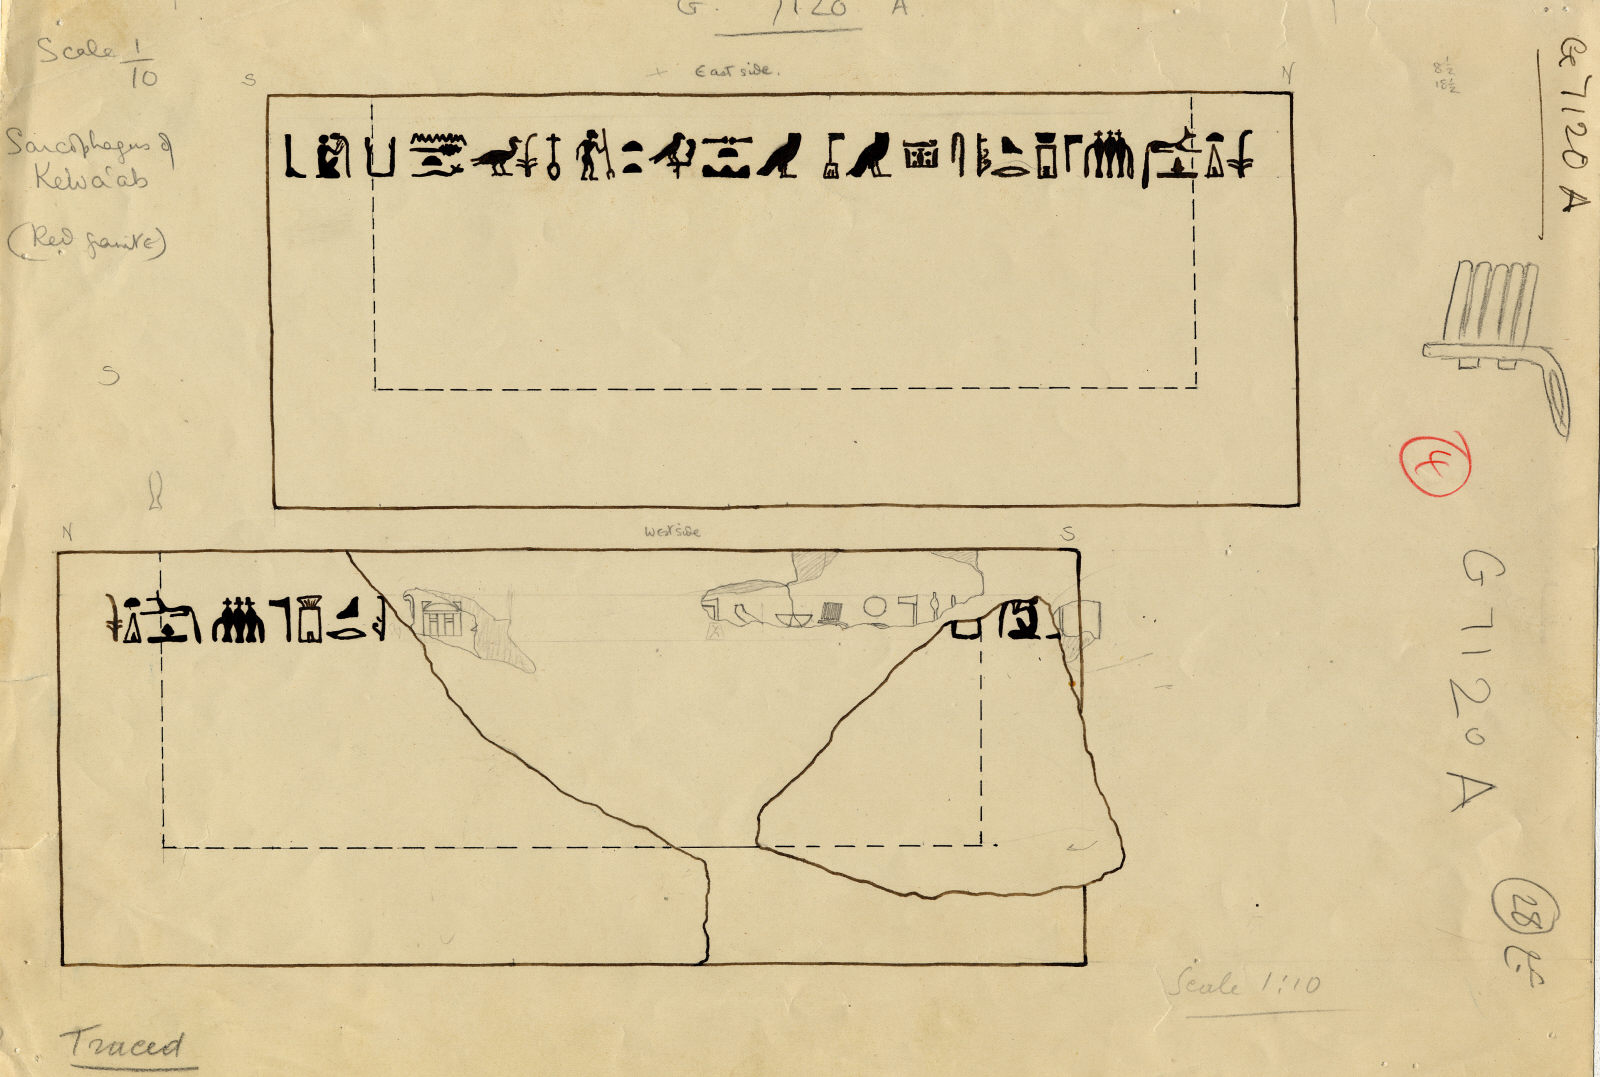 Drawings: 7120, Shaft A: sarcophaugs of Kawab, red granite